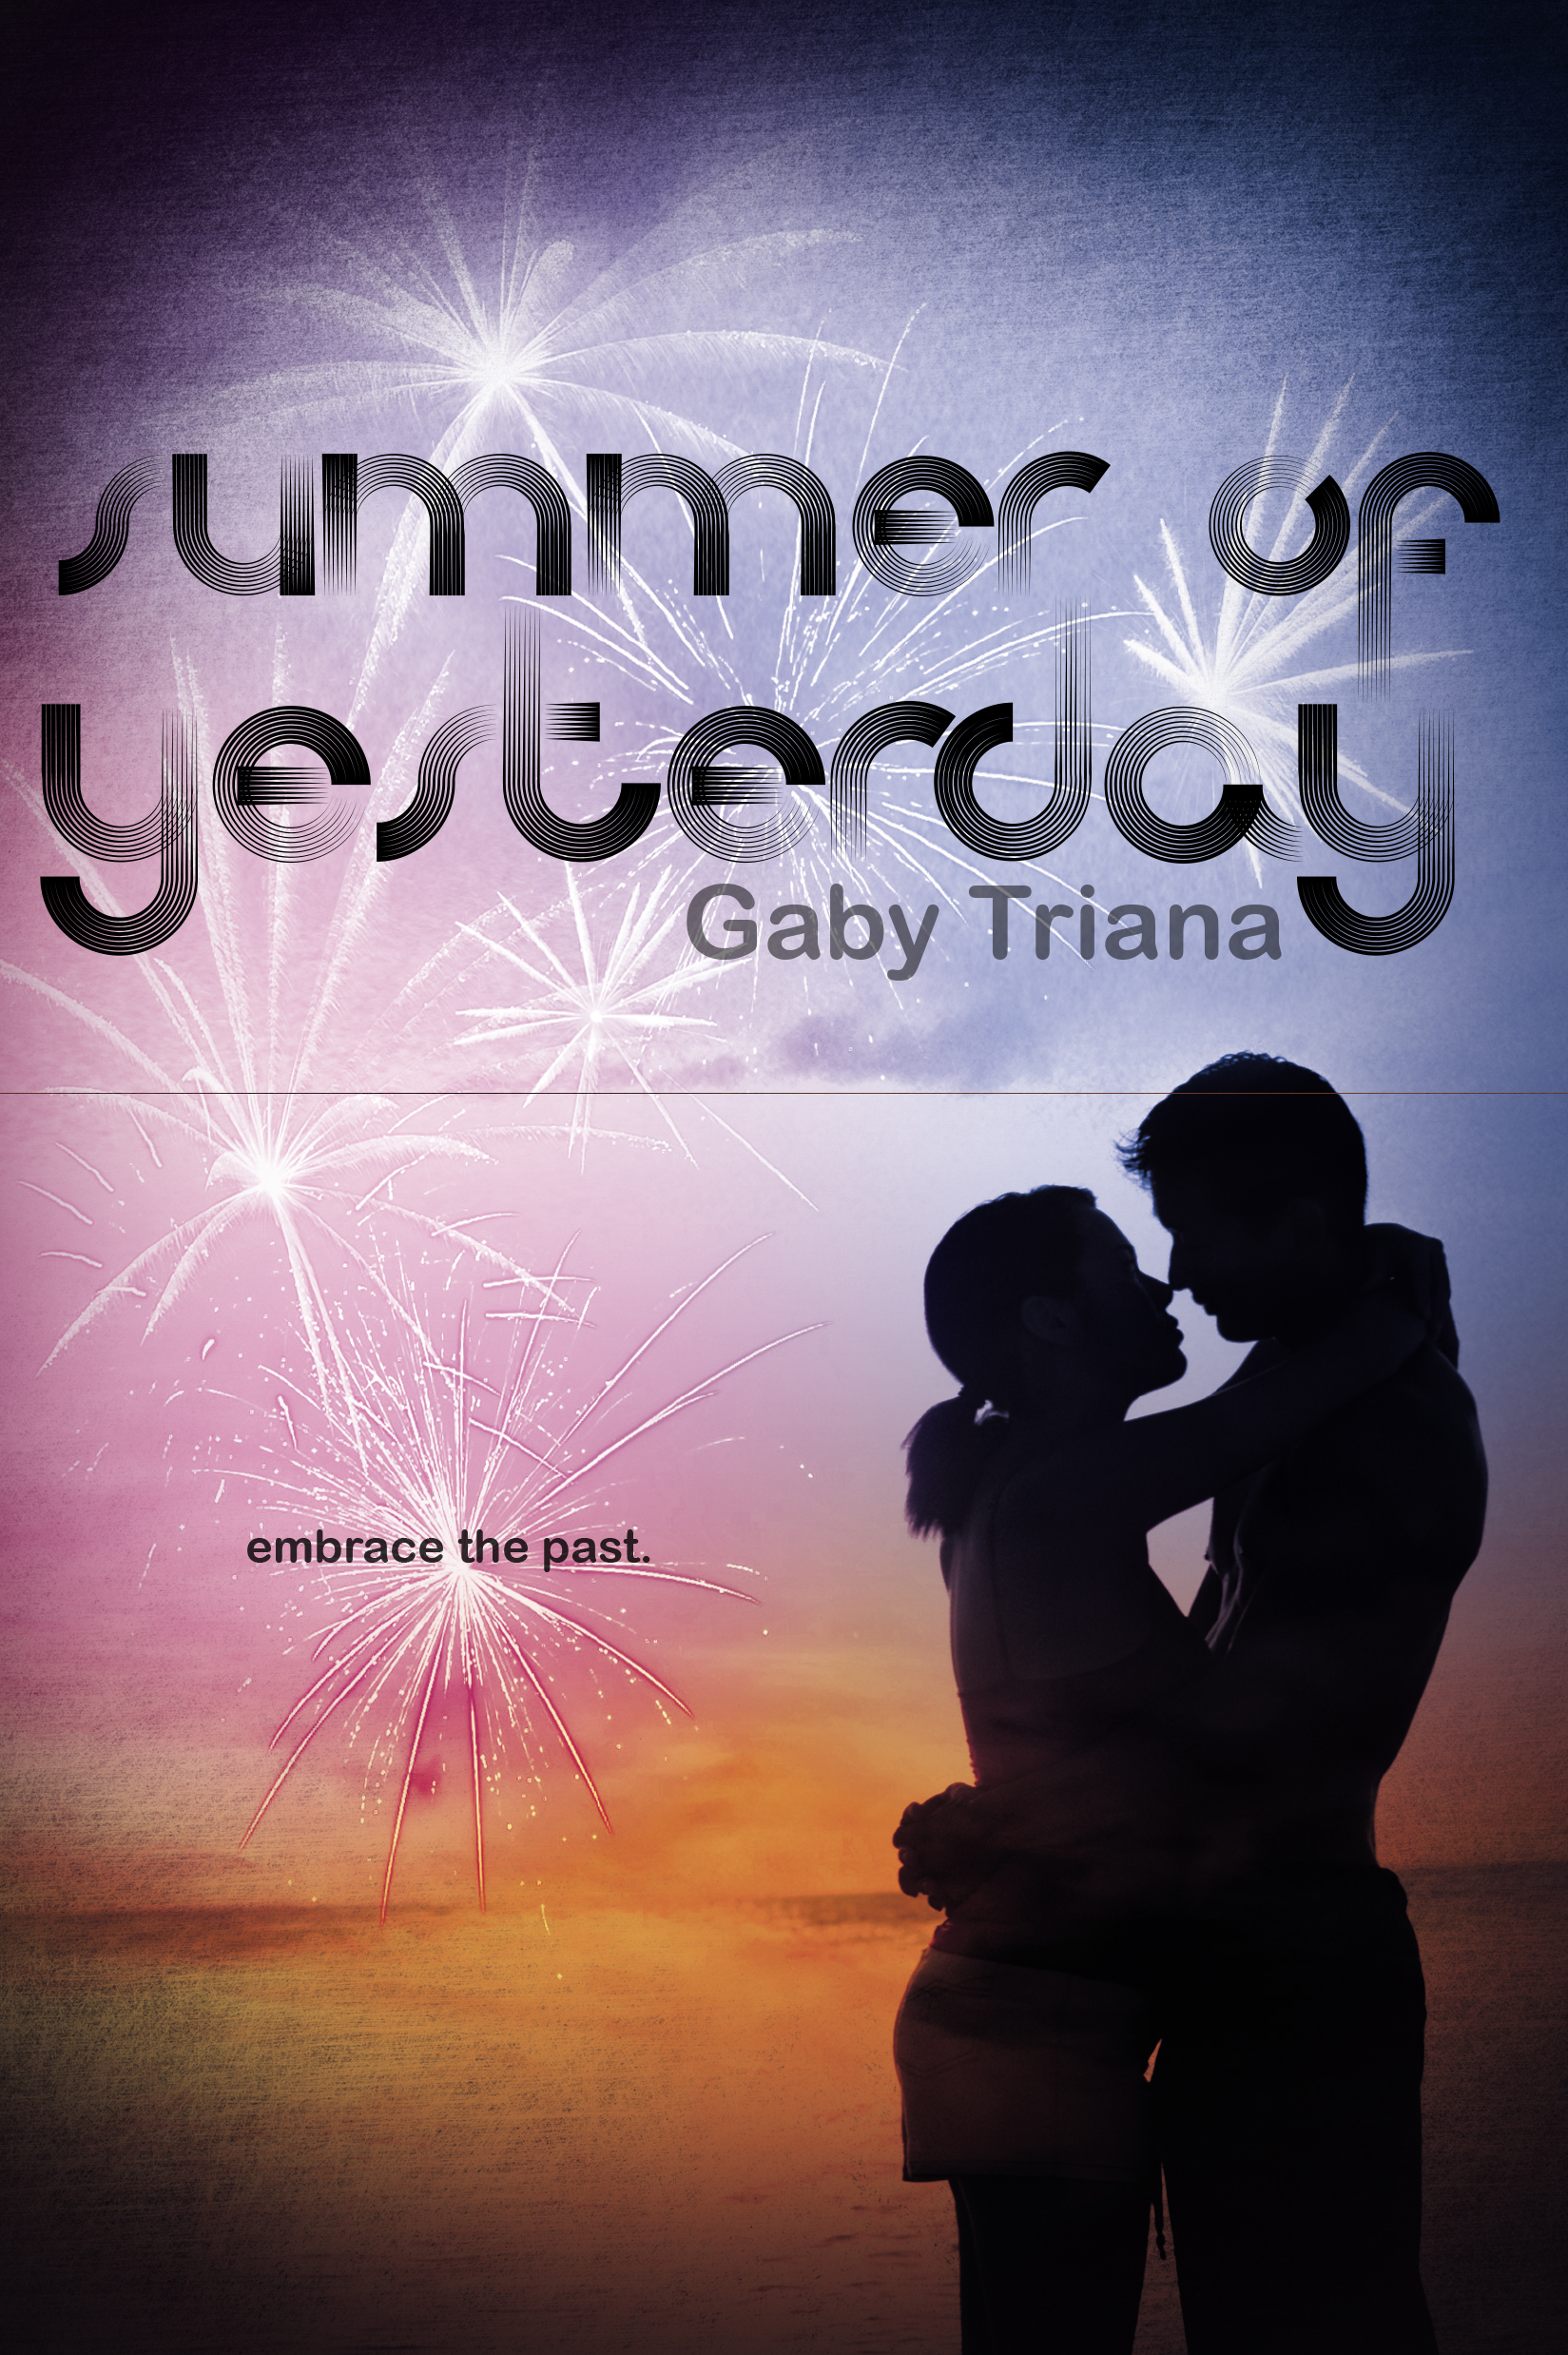 Summer-of-yesterday-9781481401302_hr